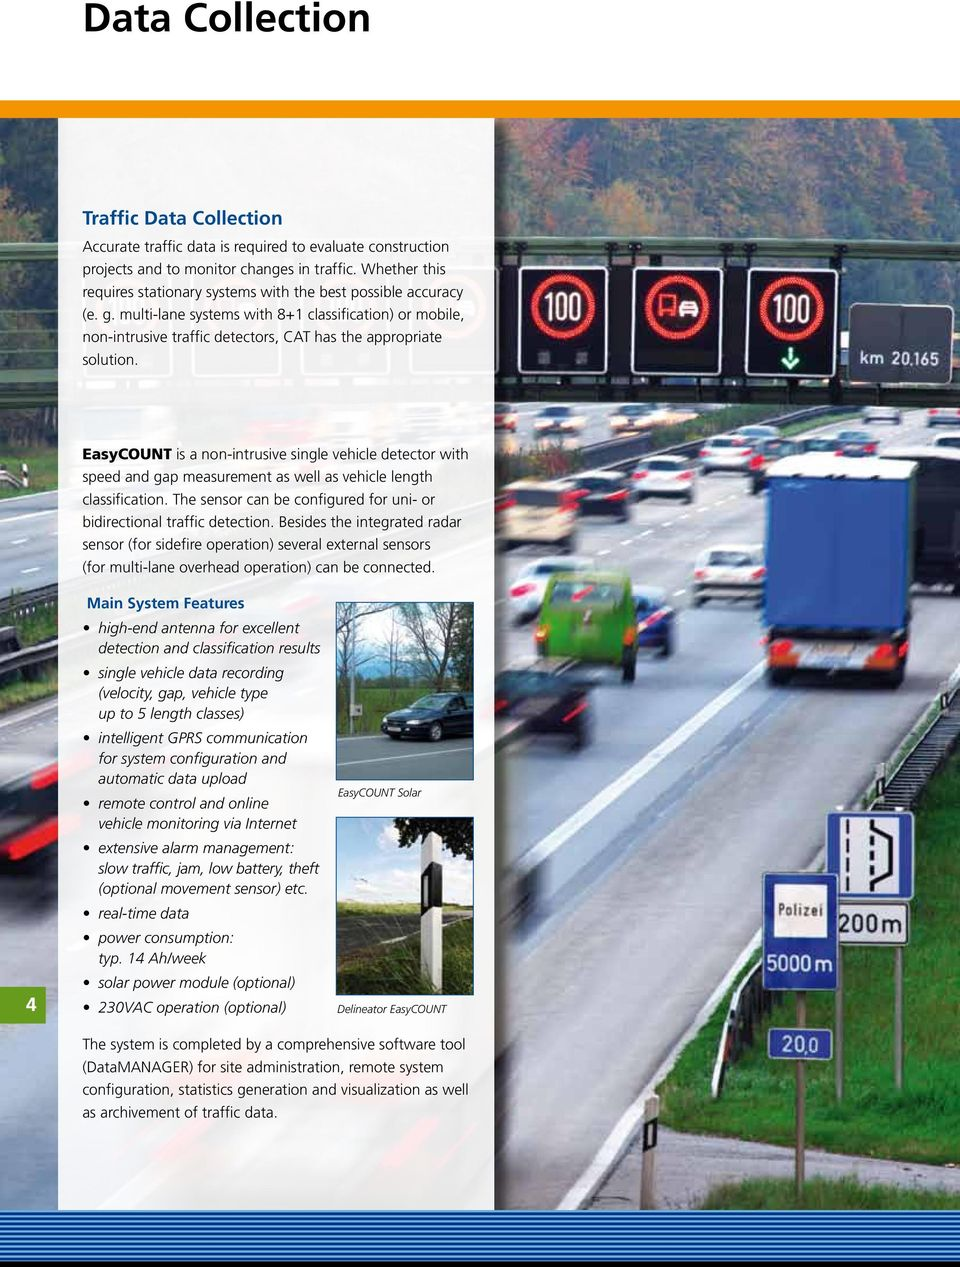 multi-lane systems with 8+1 classification) or mobile, non-intrusive traffic detectors, CAT has the appropriate solution.